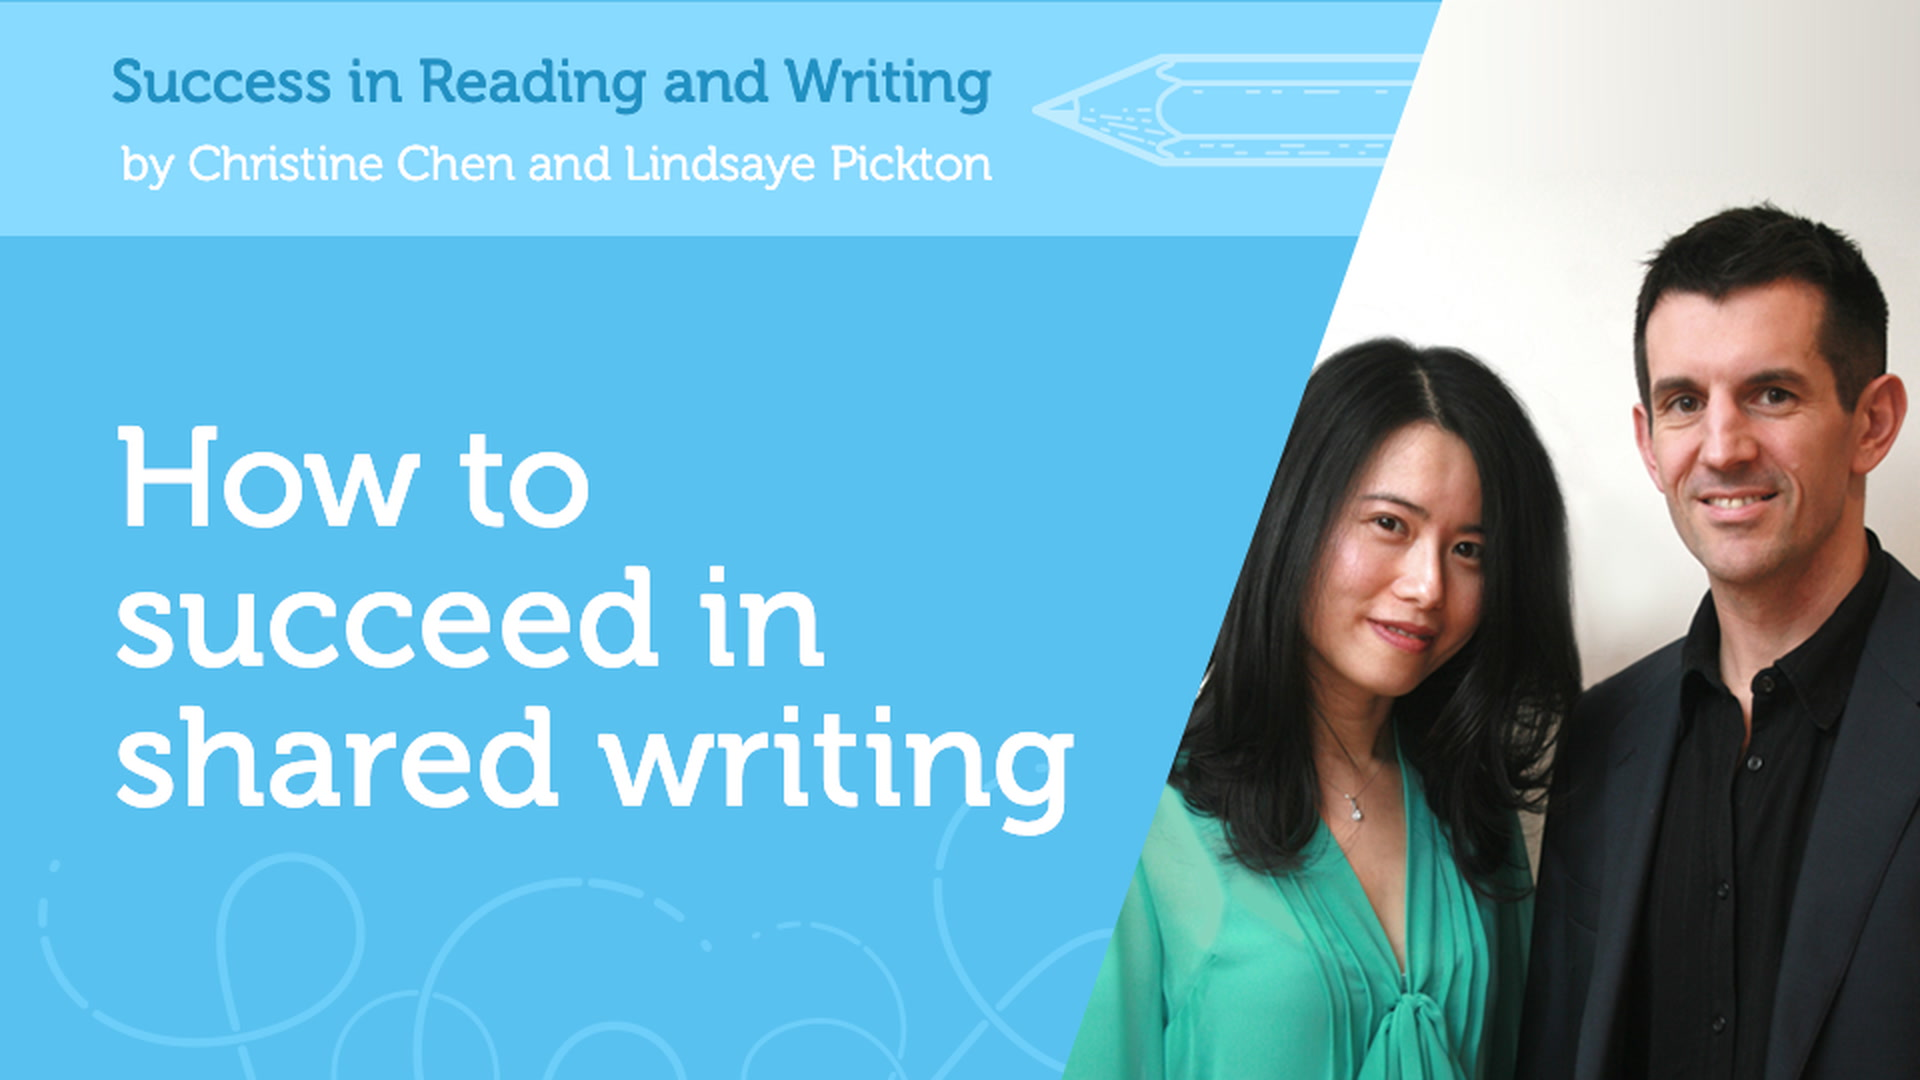 How to succeed in shared writing